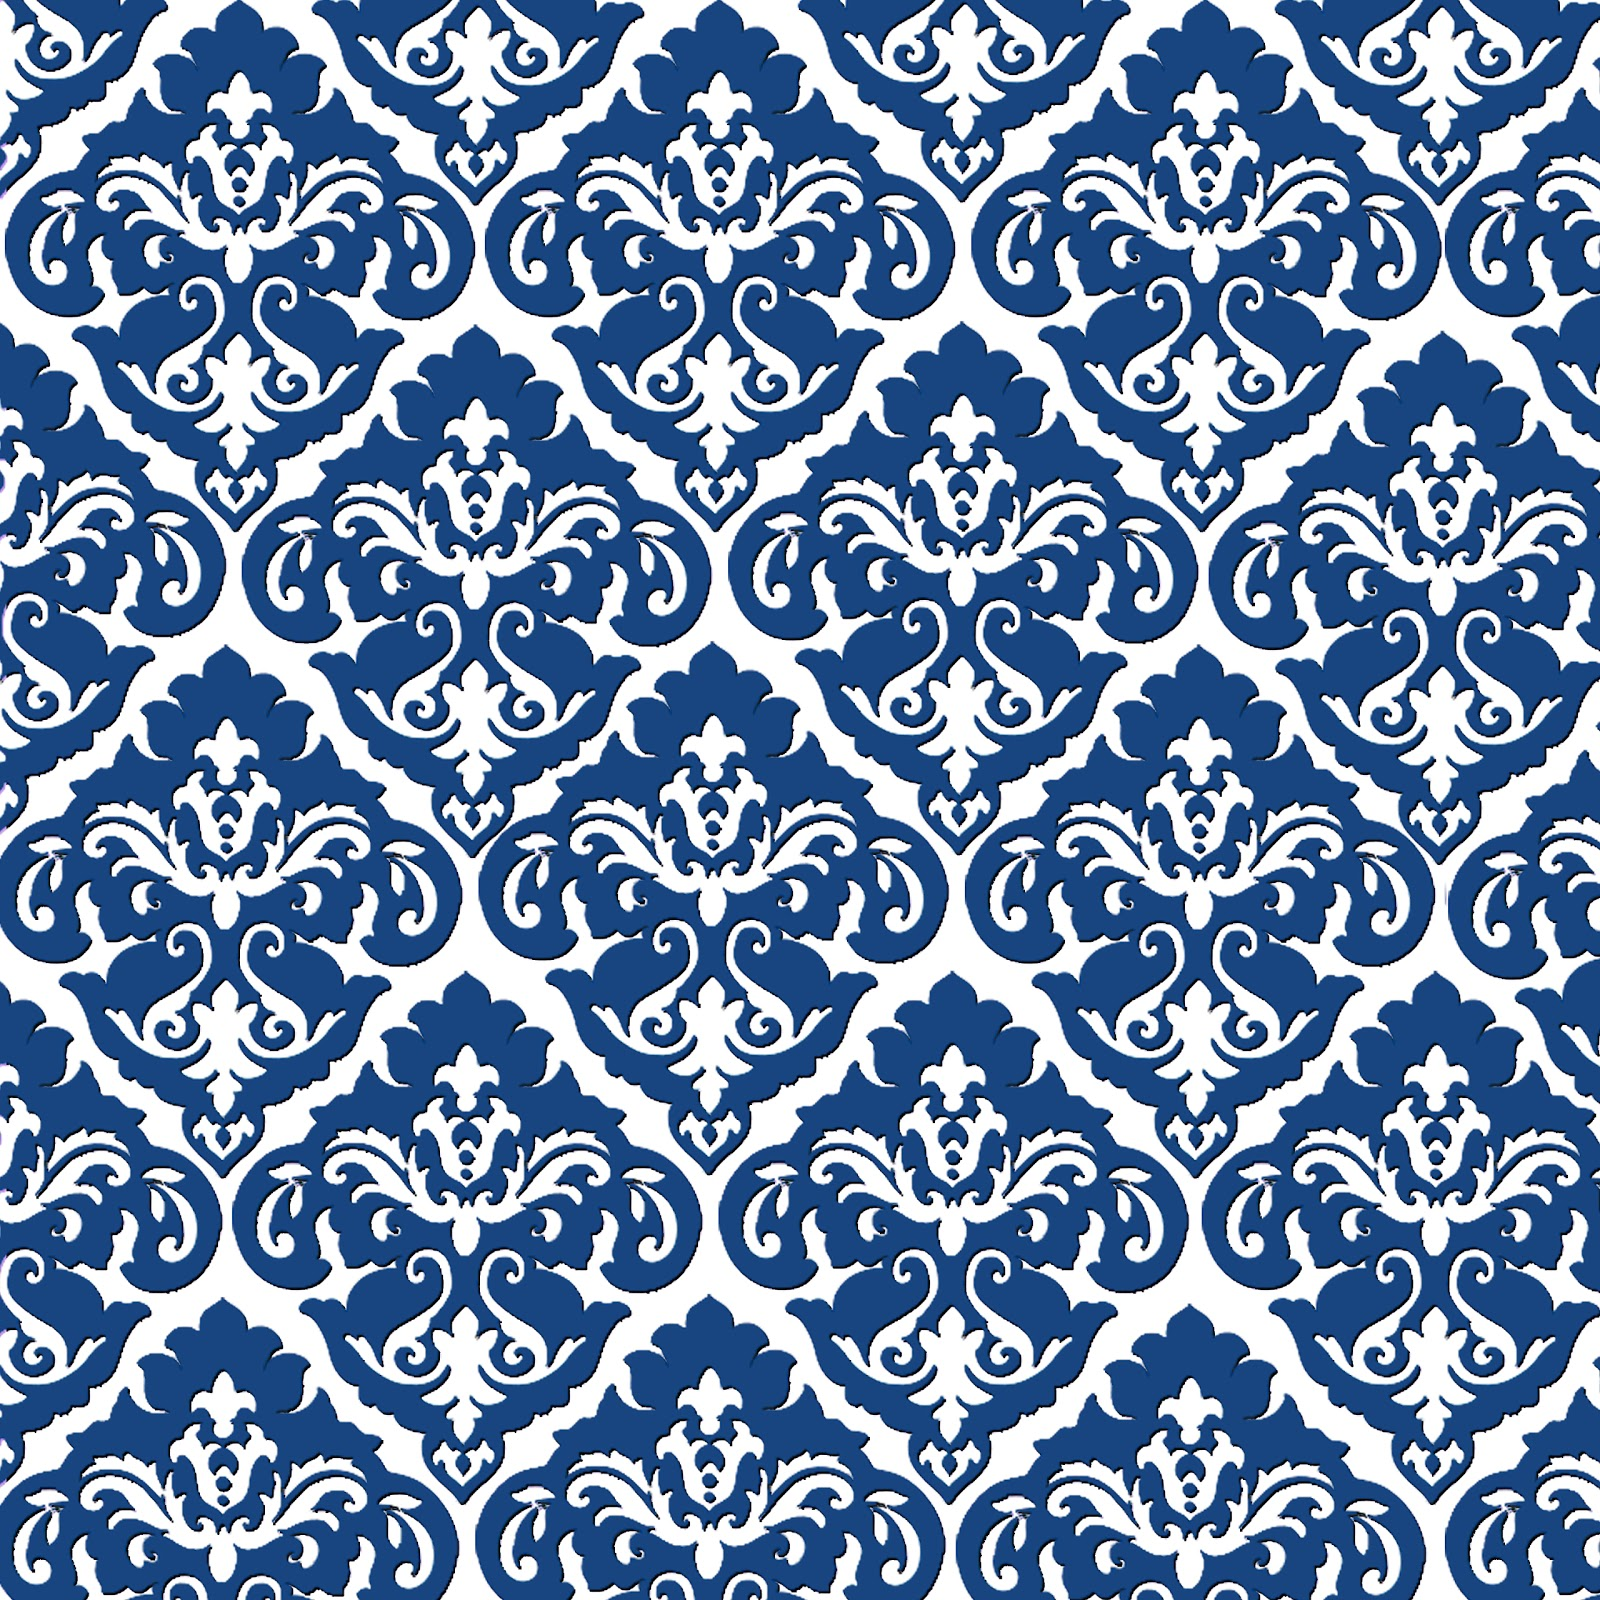 printable damask wallpaper - photo #5